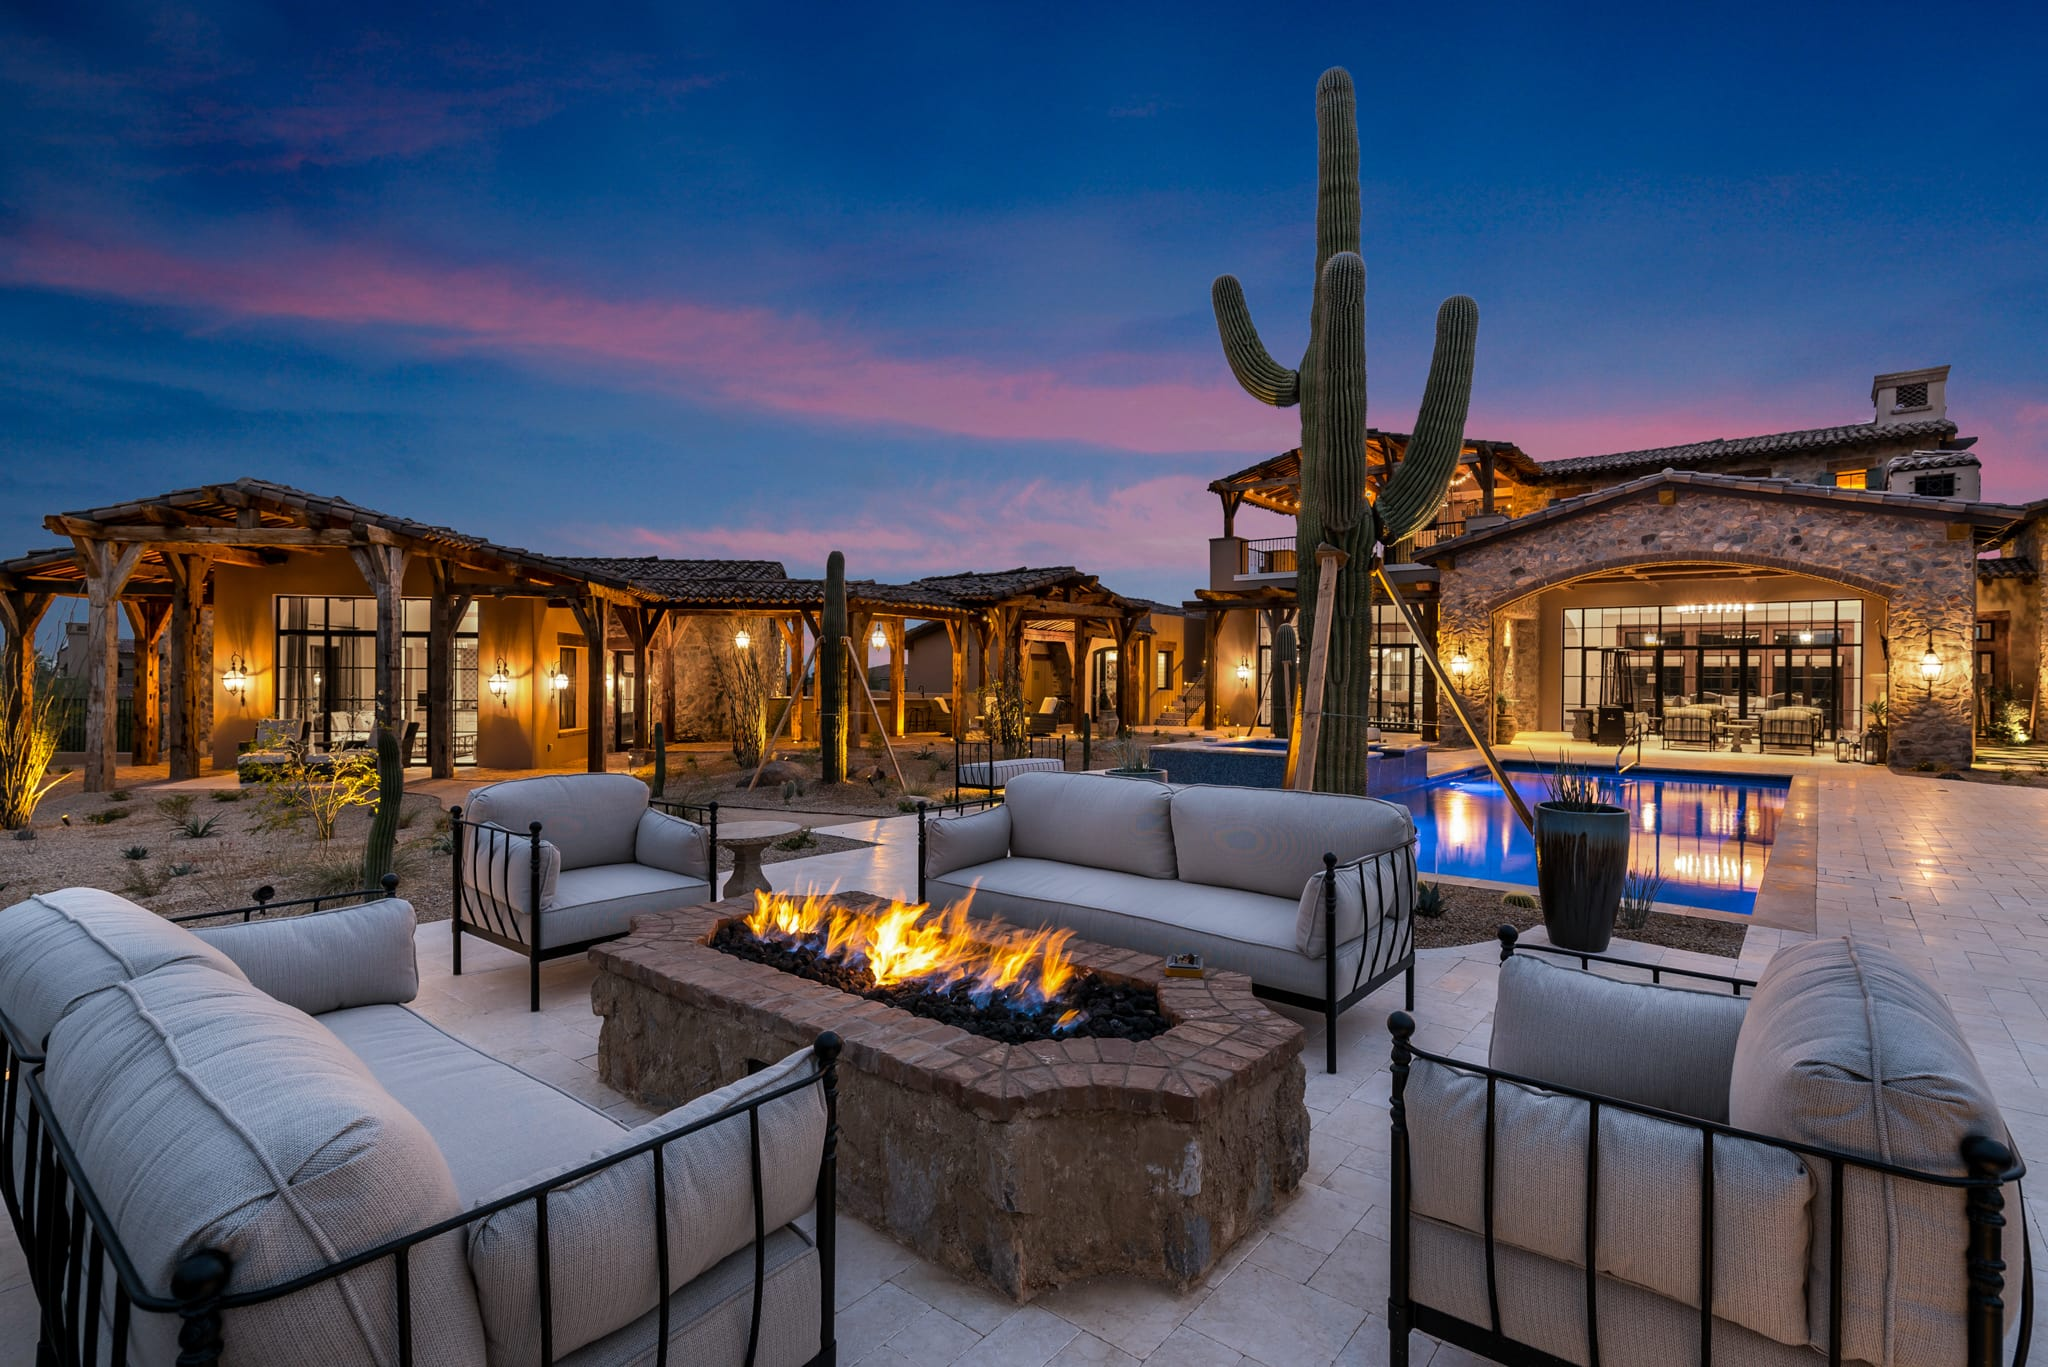 Top Luxury Architectural Design Home Trends in 2020